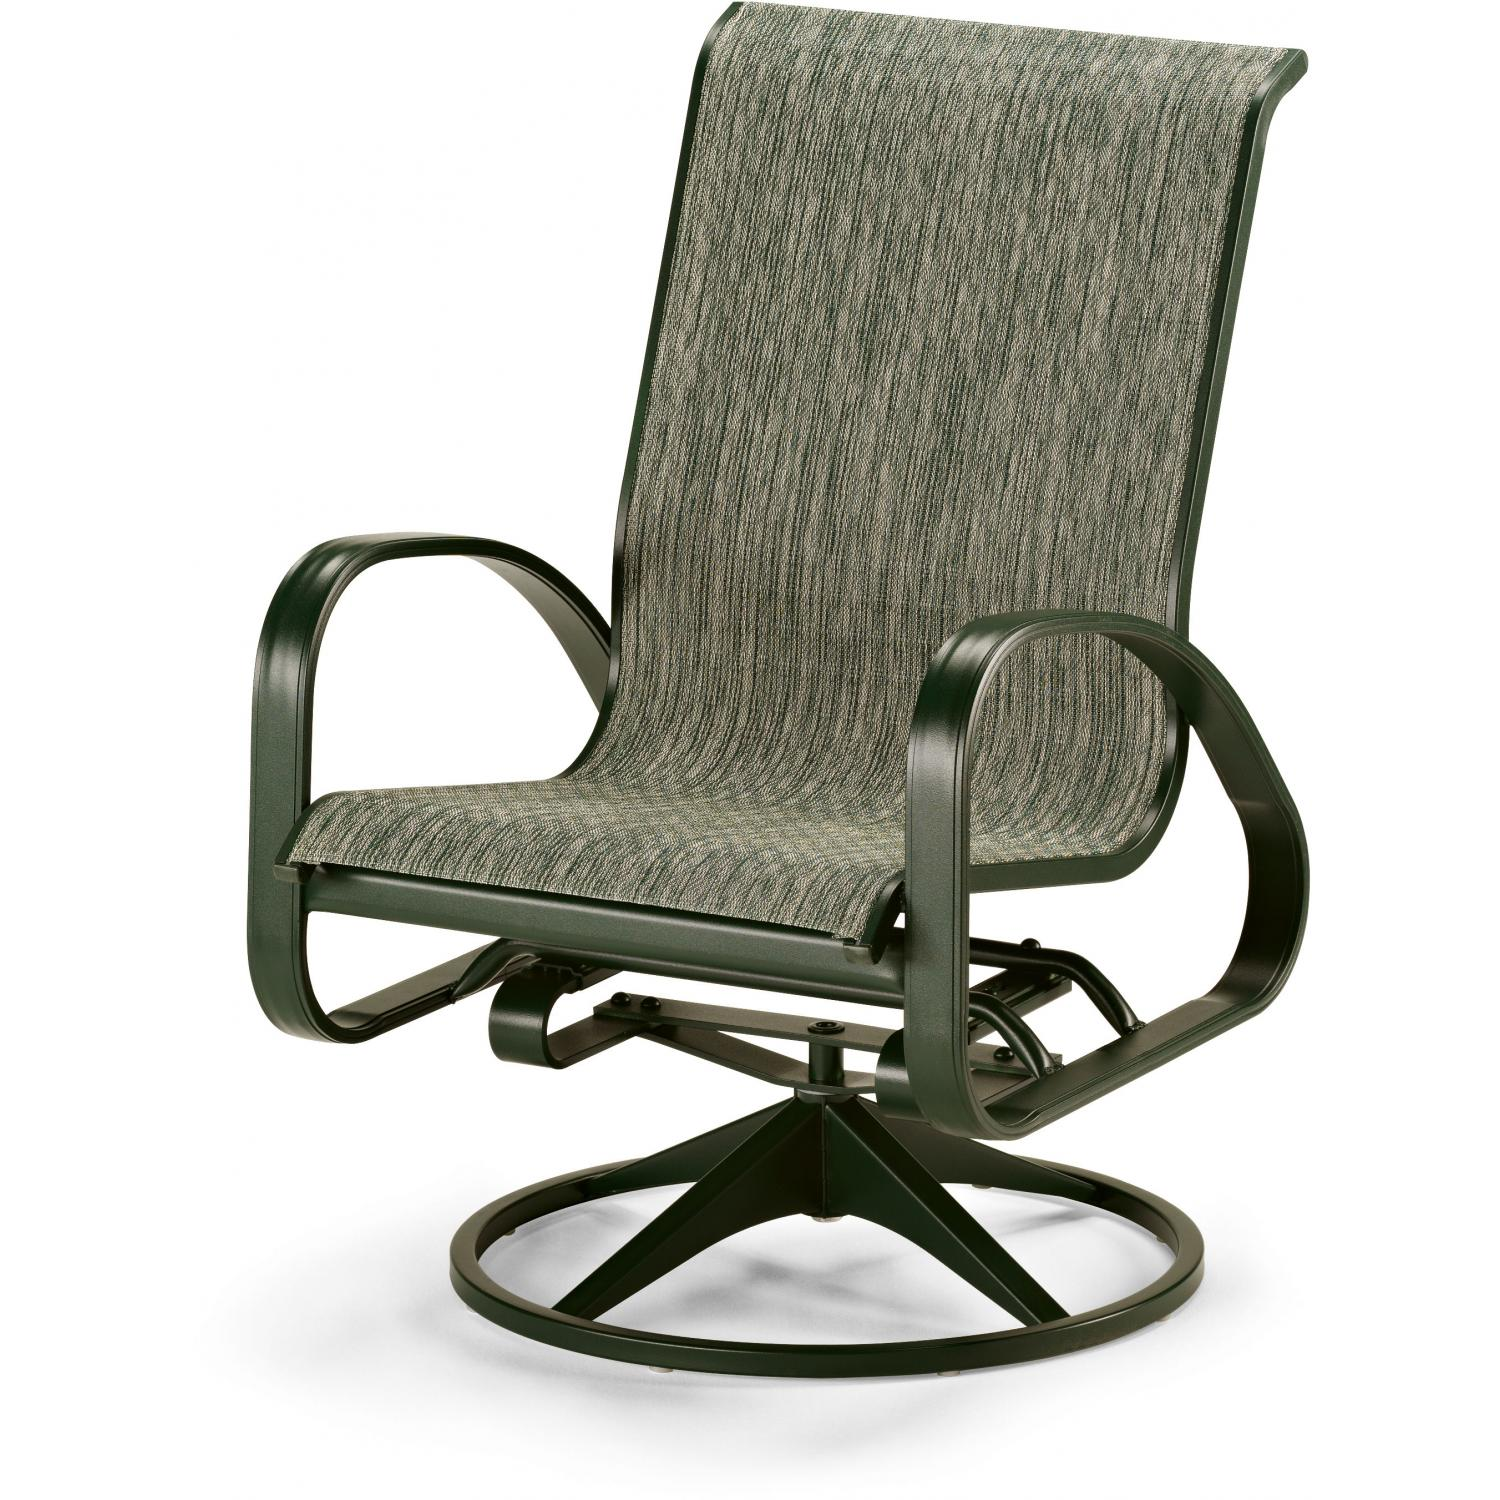 Image of: Amazing Swivel Patio Chair